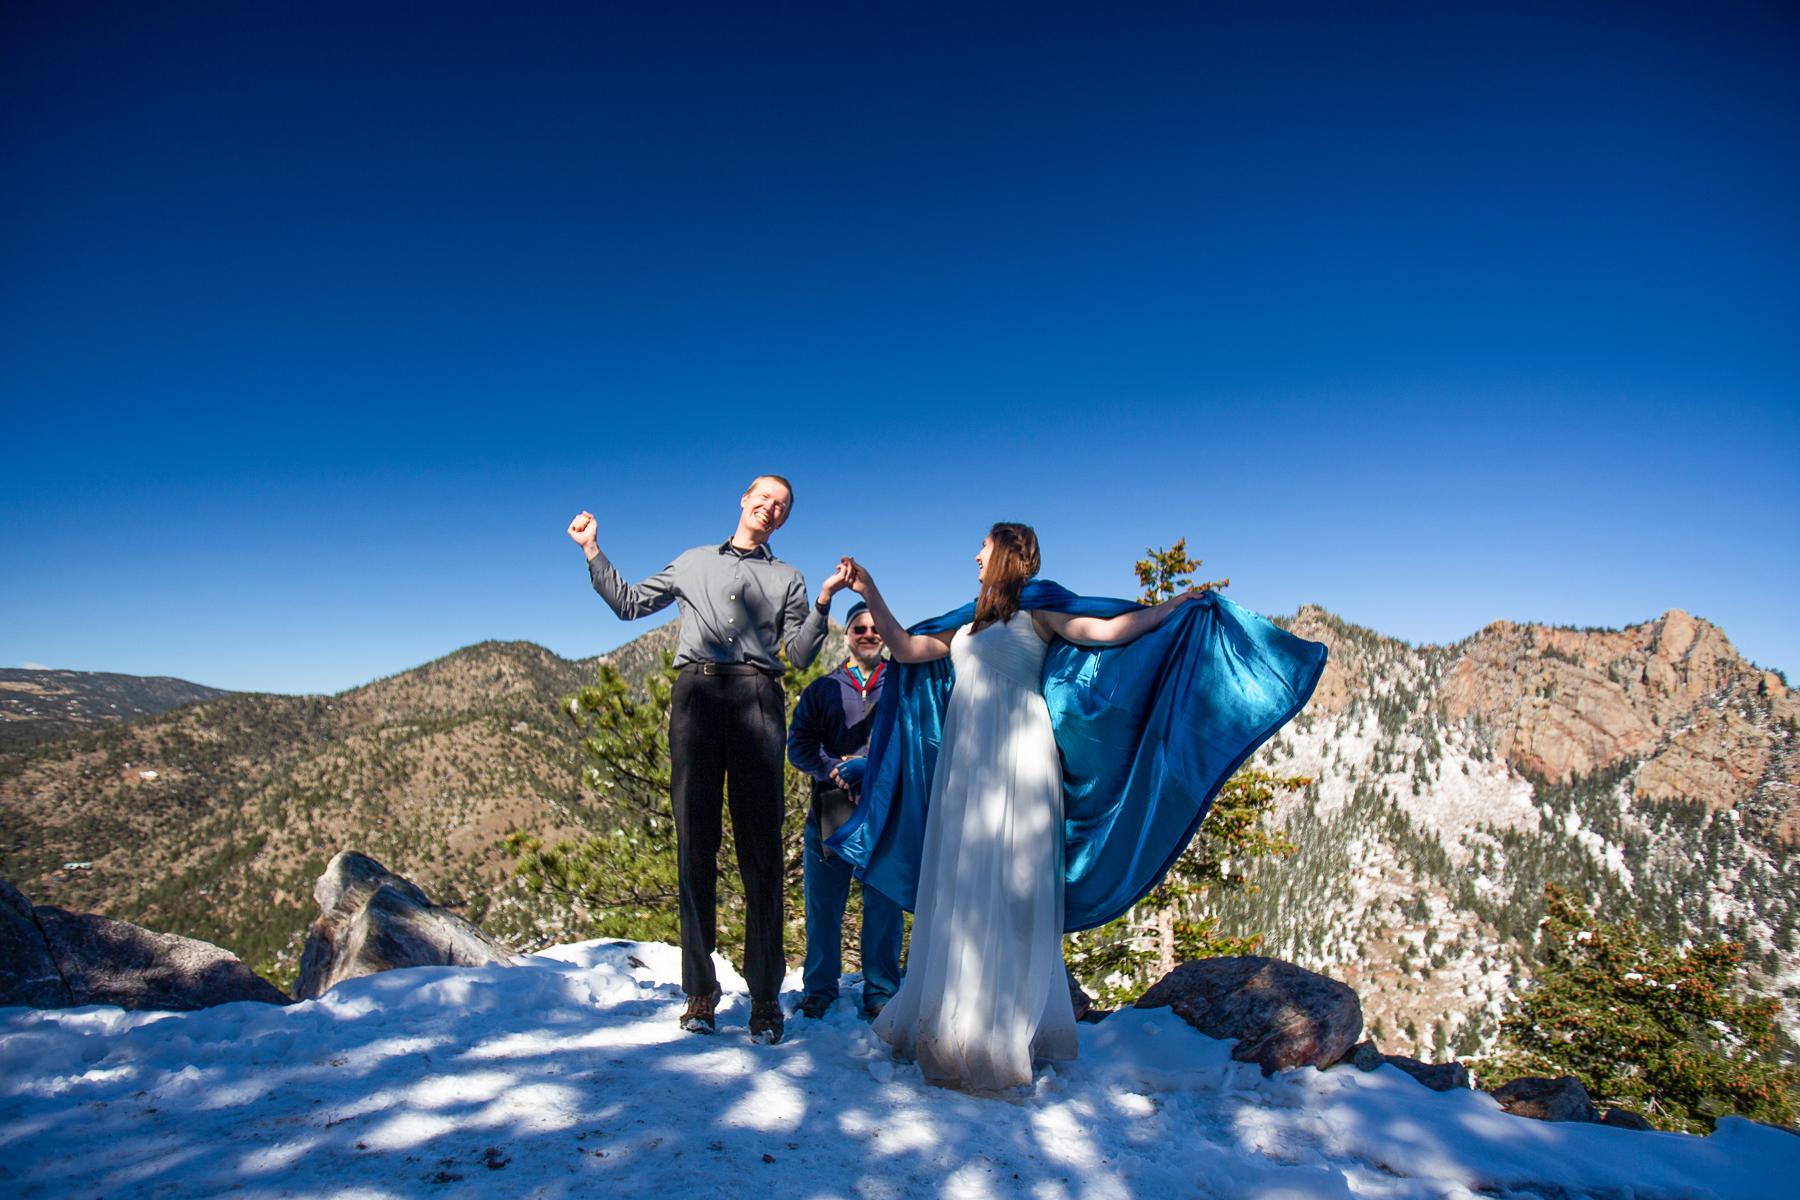 Boulder, CO Outdoor Elopement Wedding Photographer | the newlyweds announced to their watching friends and family